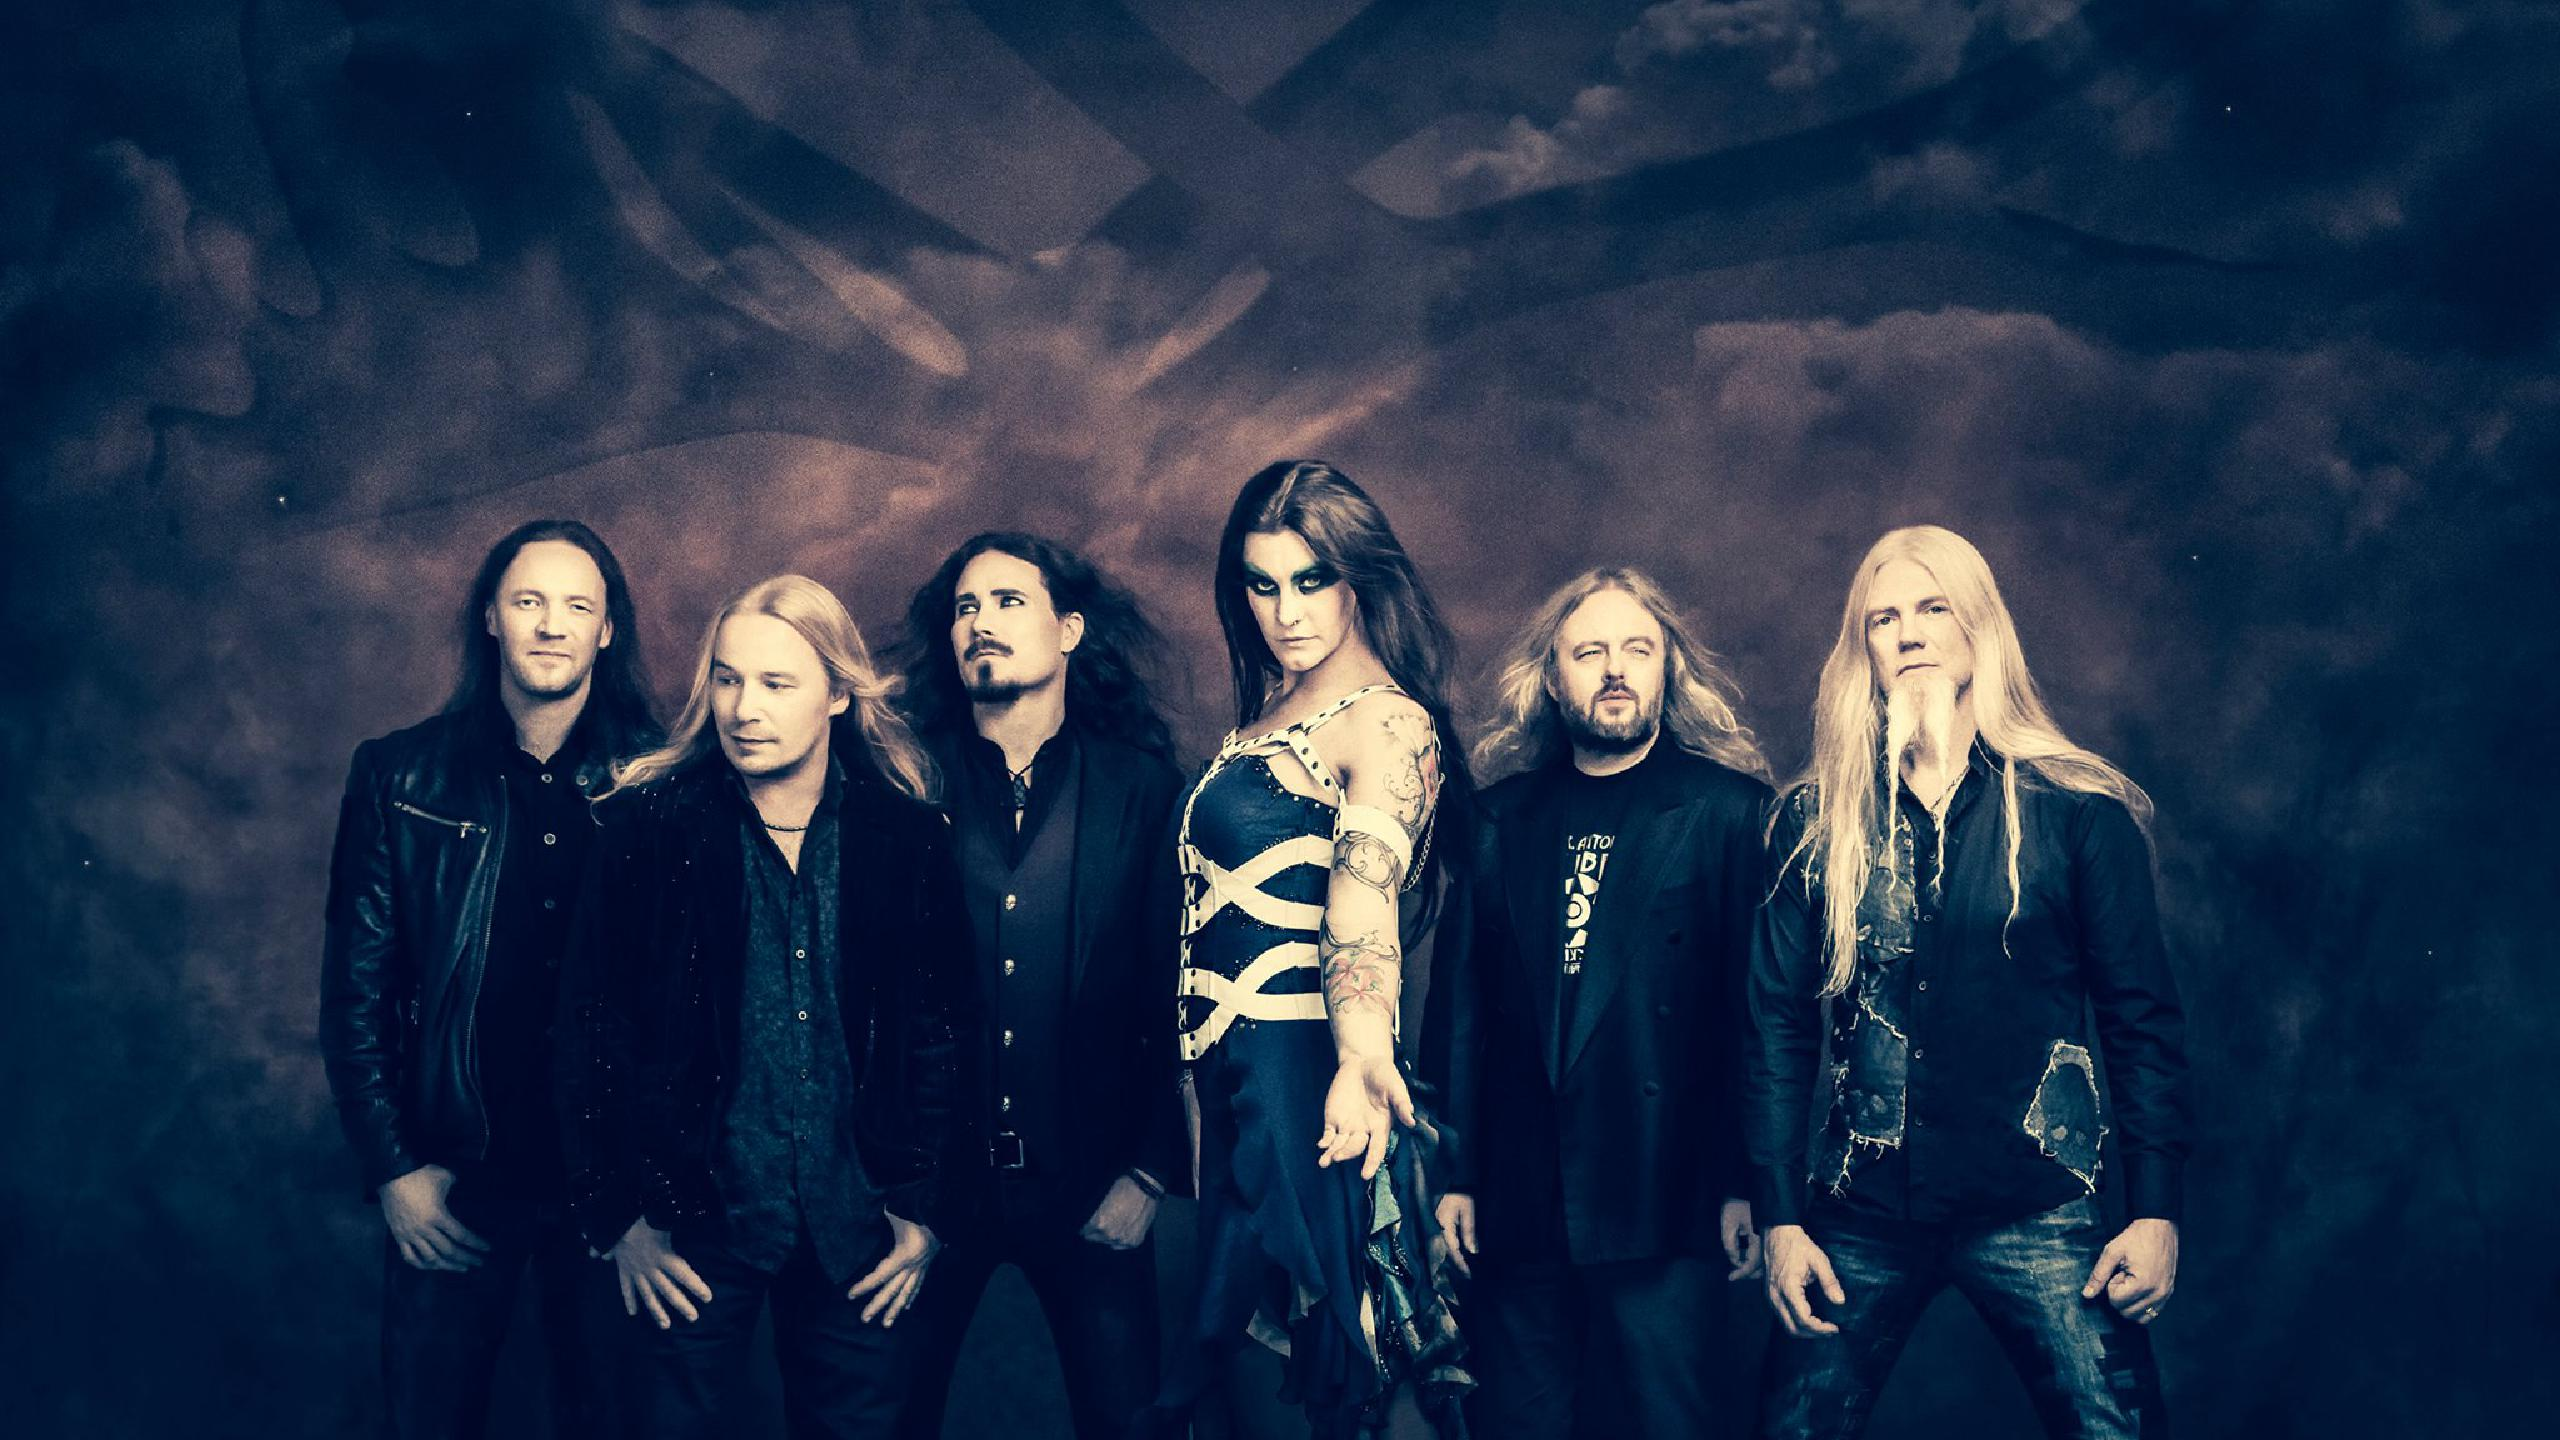 Nightwish Tour 2020.Nightwish Tour Dates 2019 2020 Nightwish Tickets And